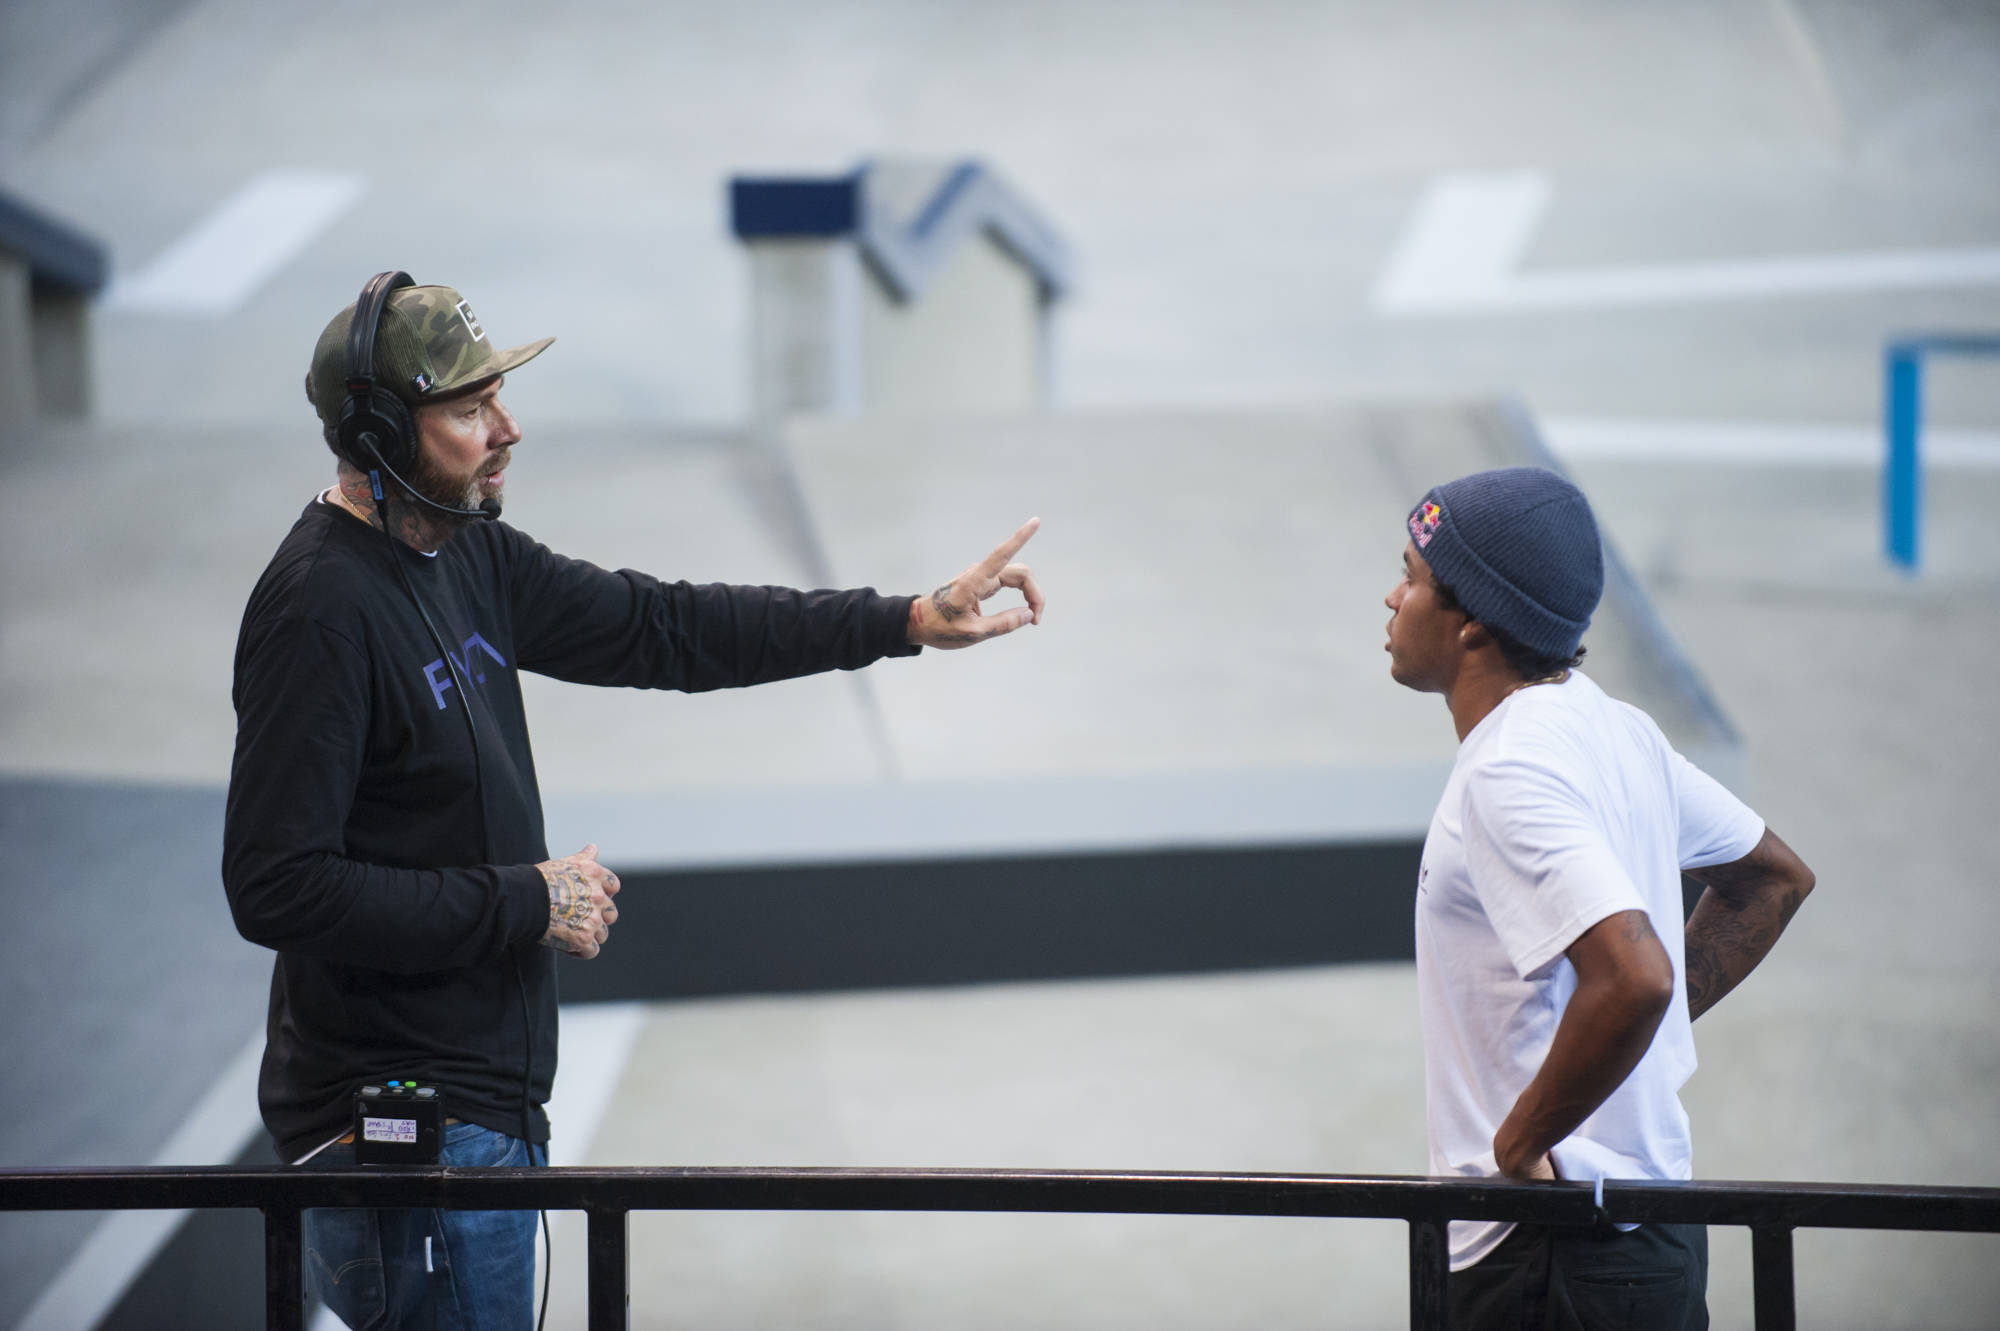 2018 SLS PRO OPEN LONDON PHOTO GALLERY | The Berrics